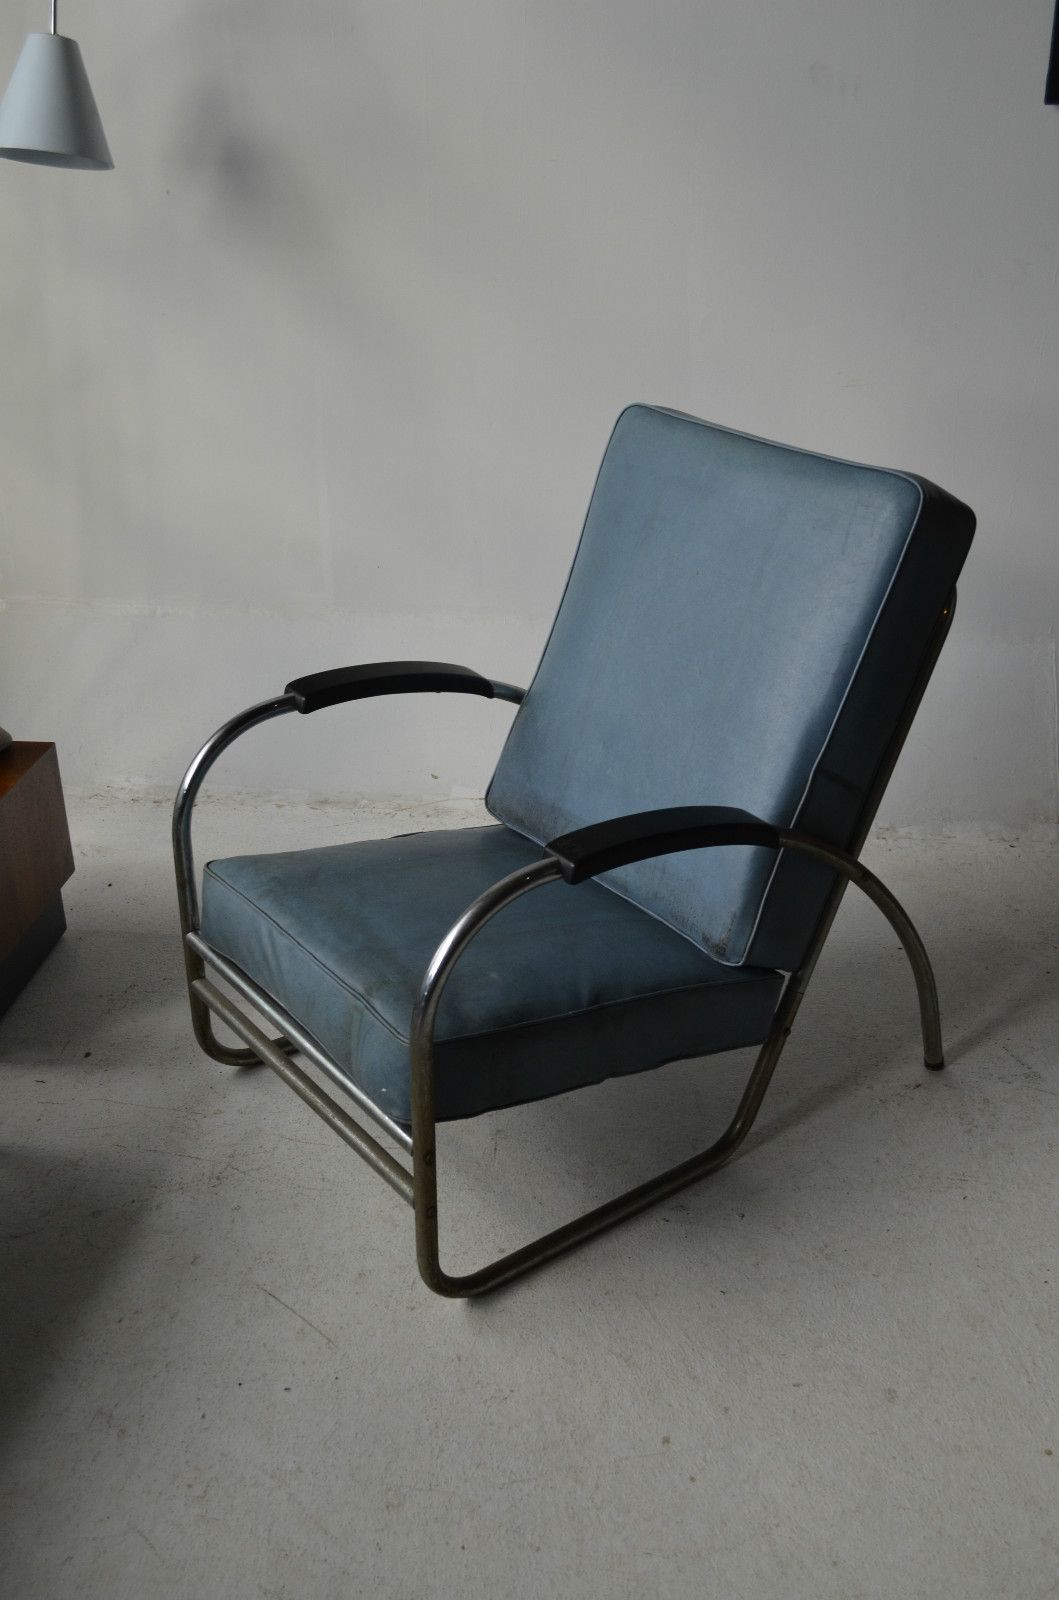 Industrial Machine Age Mid Century Modern Chrome Chair By